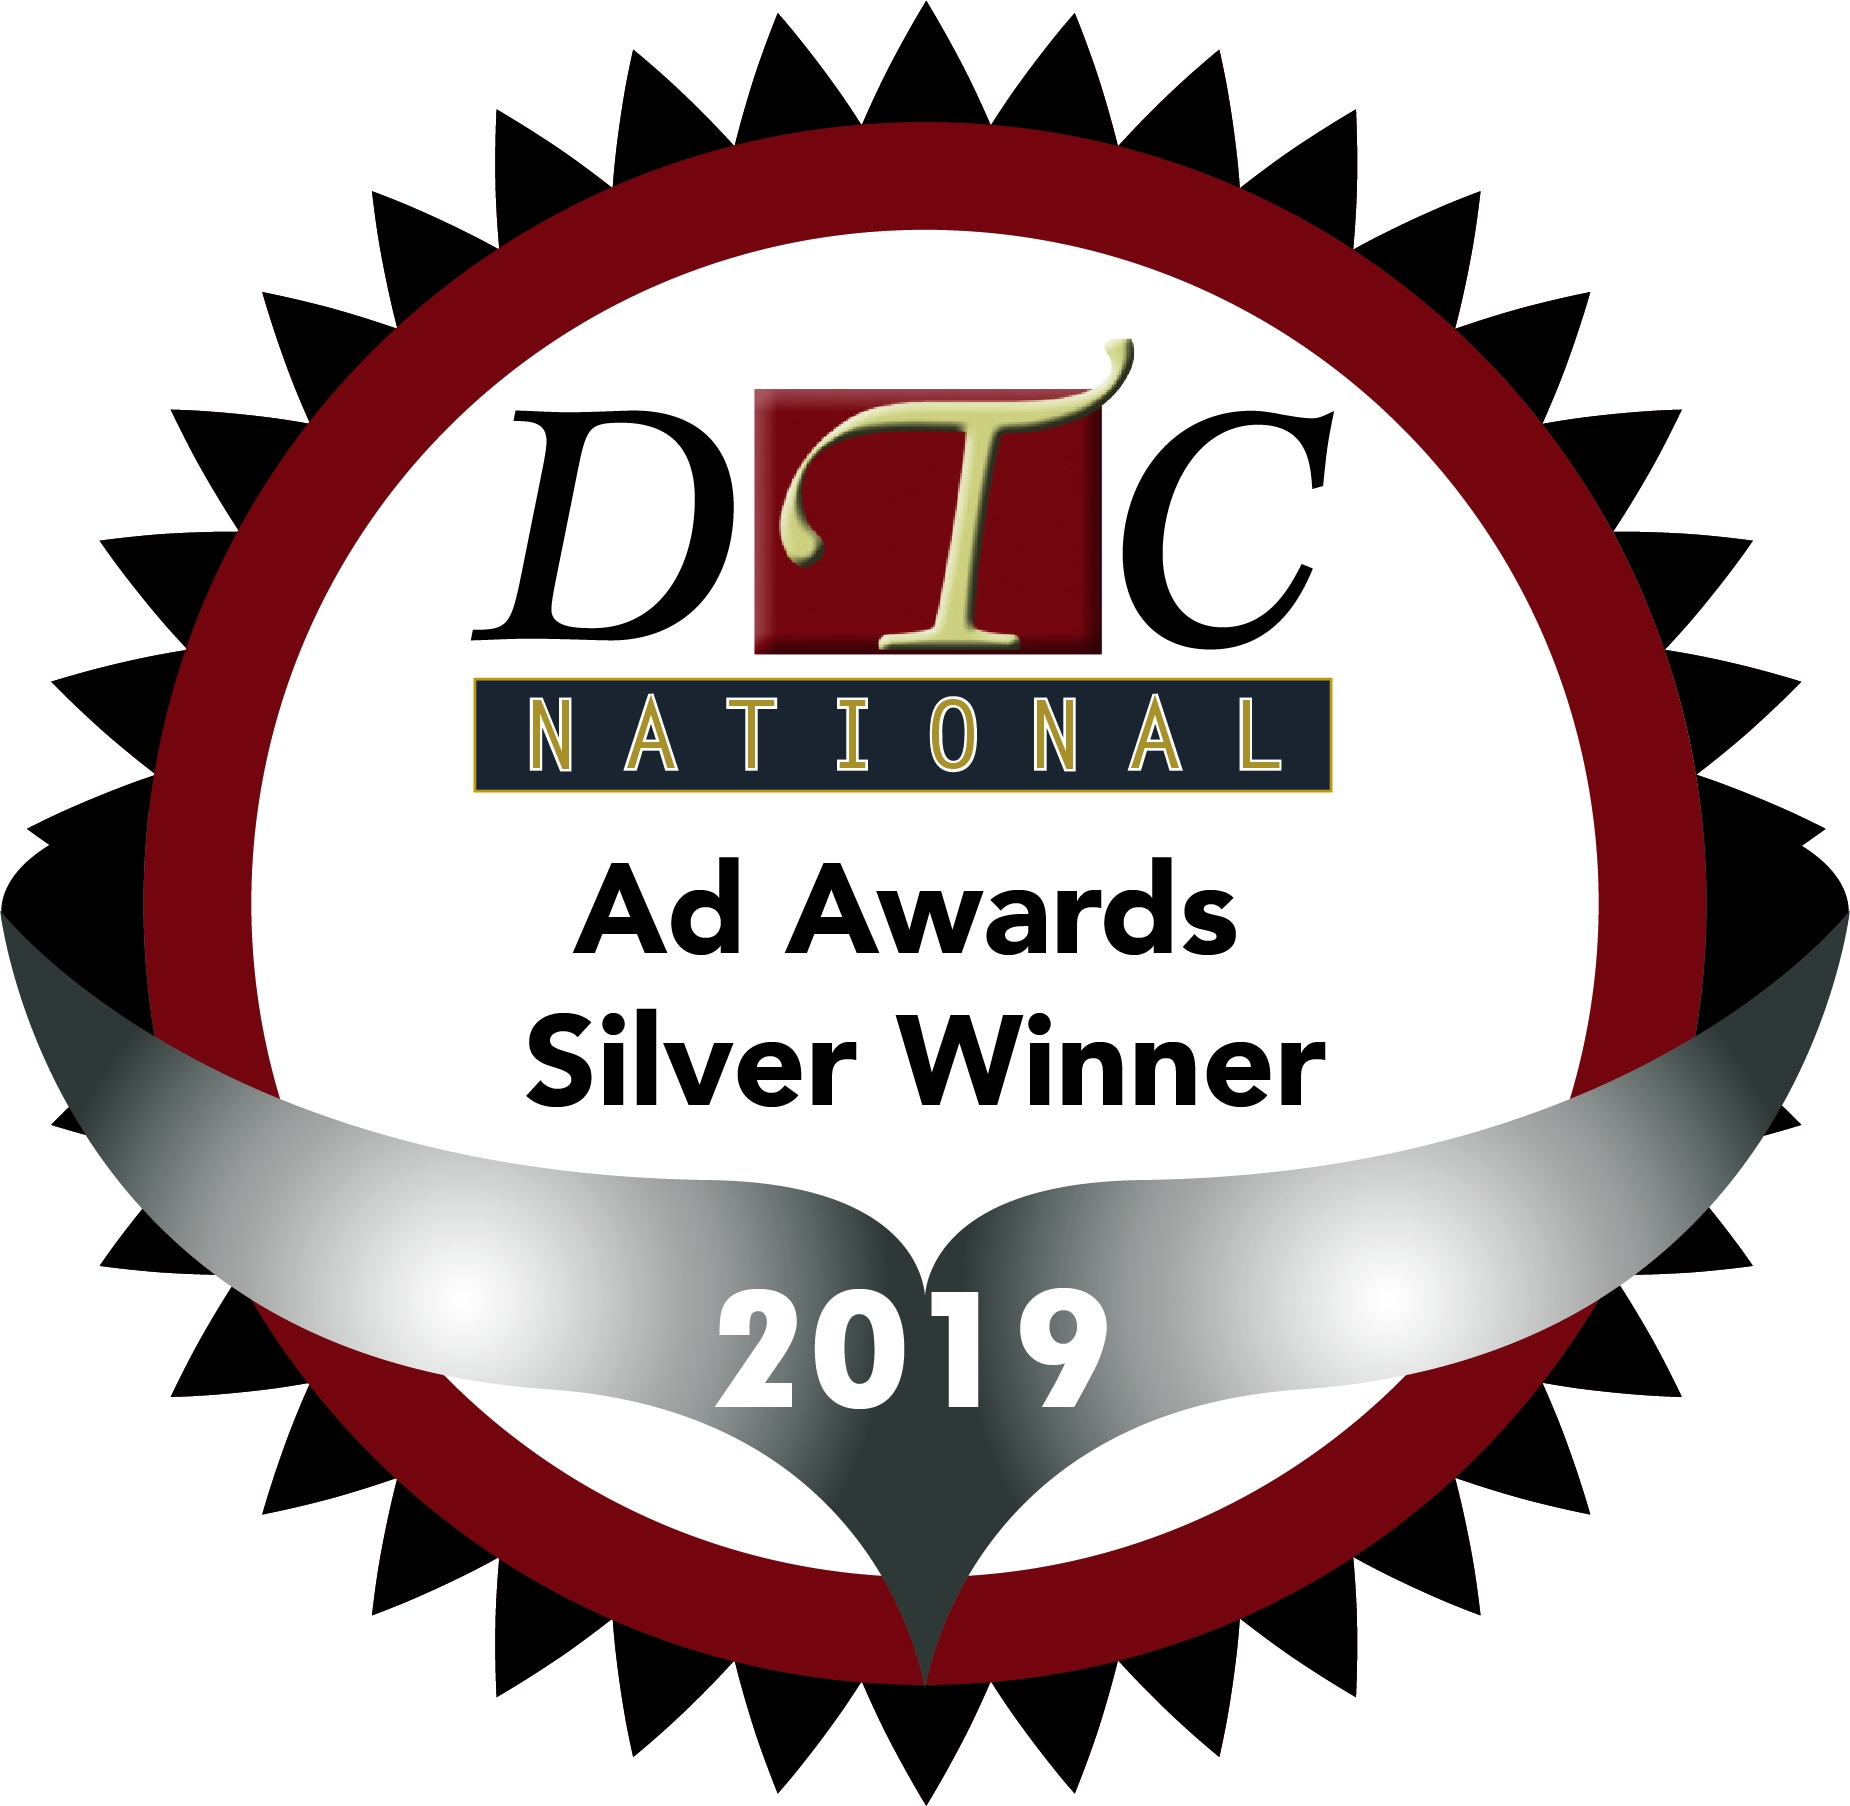 DTC National Ad Awards